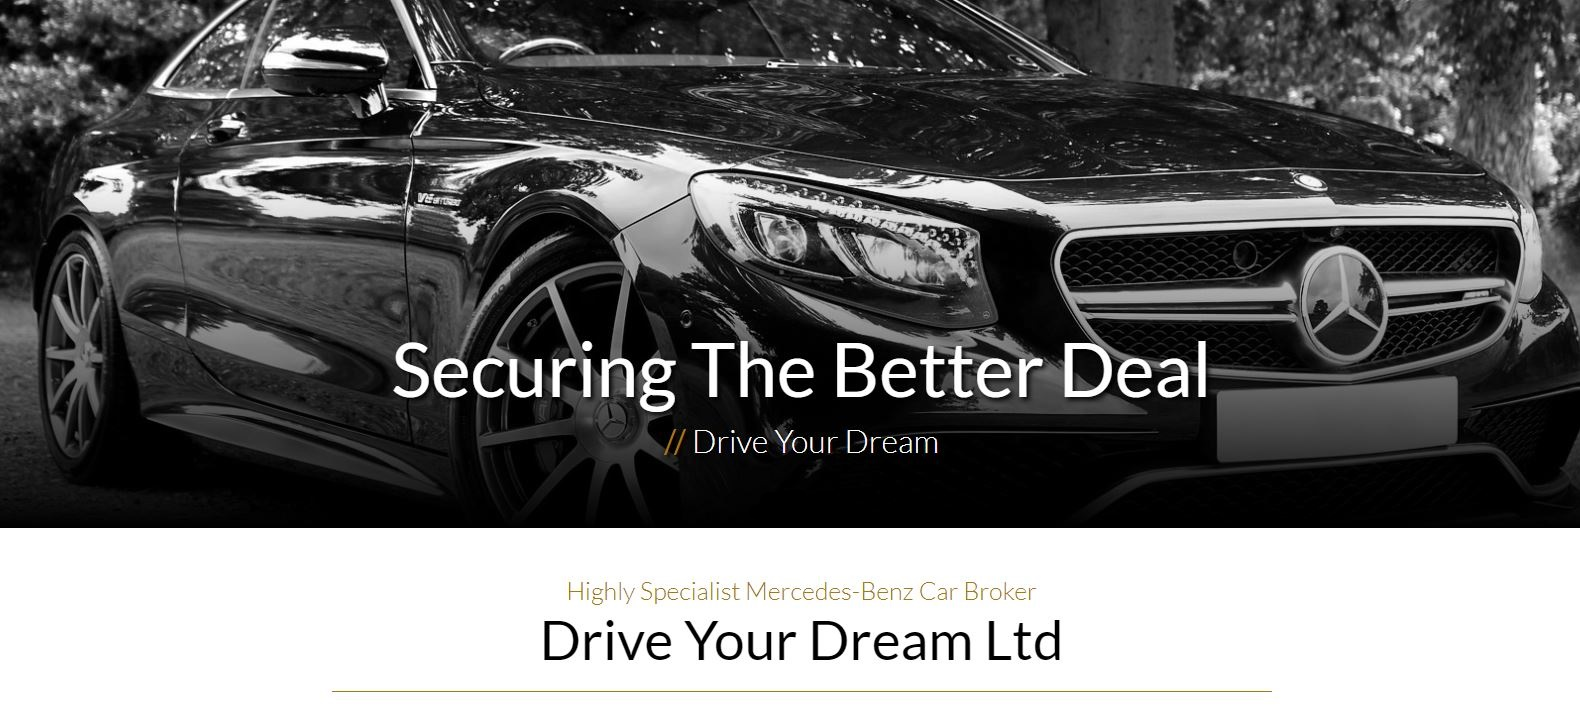 Drive Your Dream Ltd